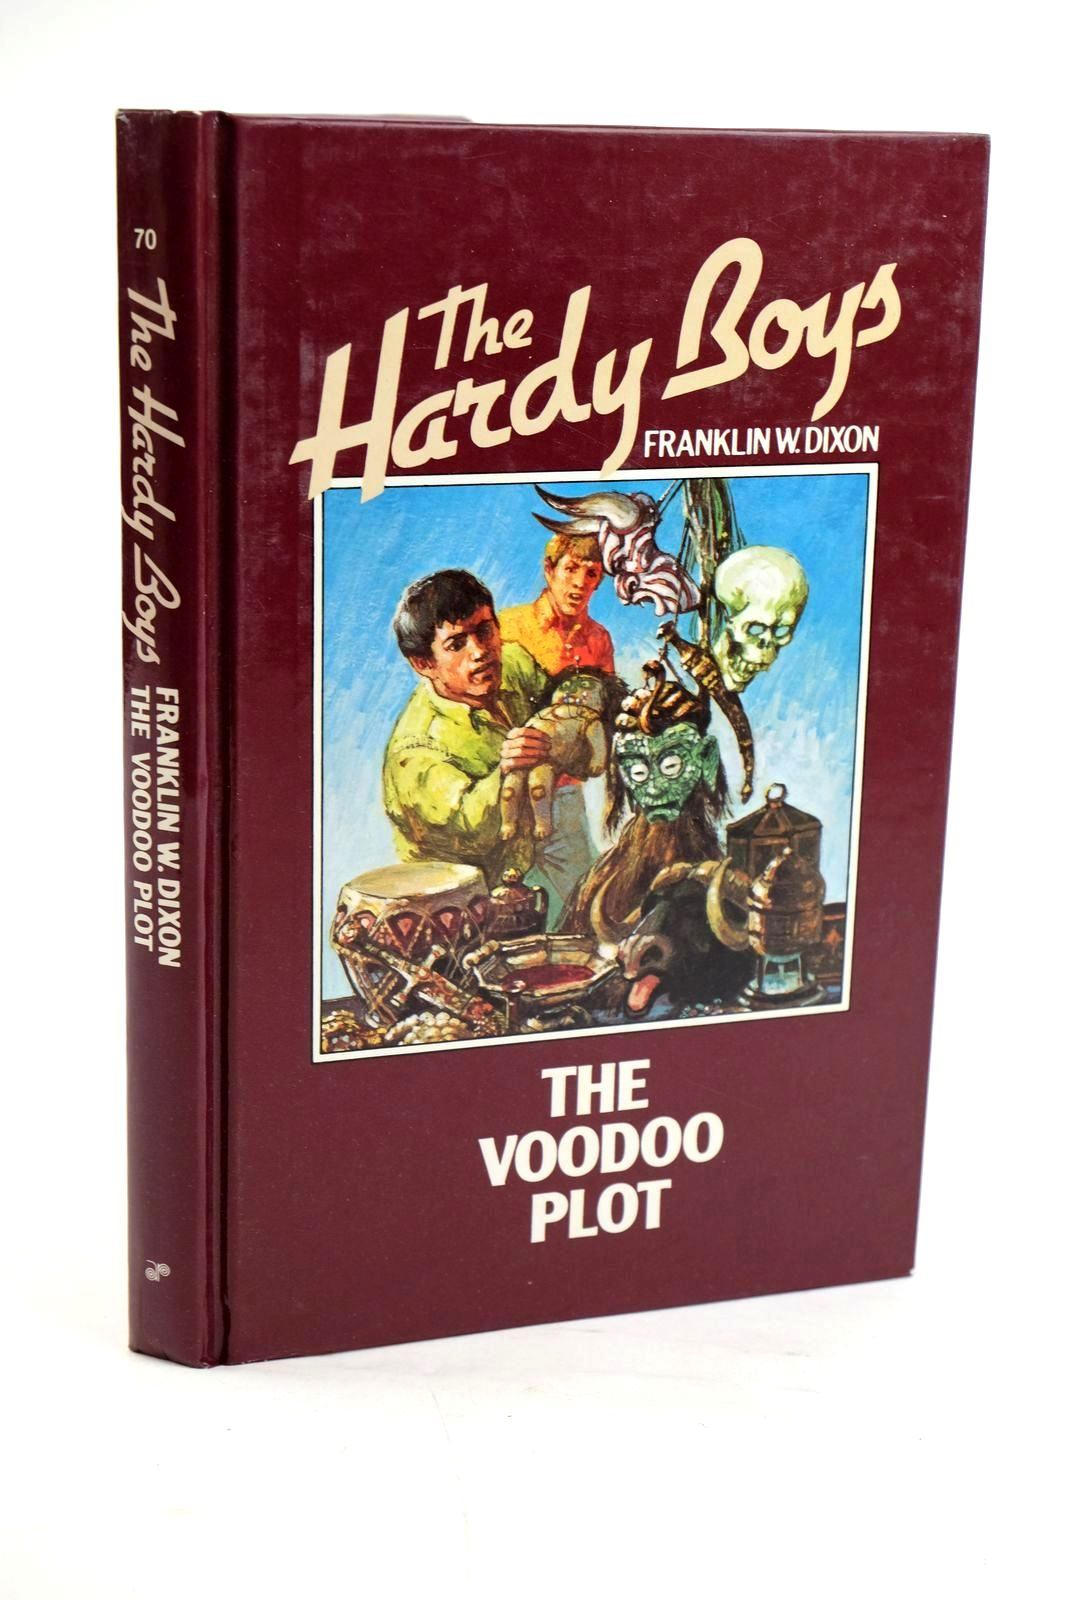 Photo of THE VOODOO PLOT written by Dixon, Franklin W. illustrated by Morrill, Leslie published by Angus & Robertson Publishers (STOCK CODE: 1319552)  for sale by Stella & Rose's Books